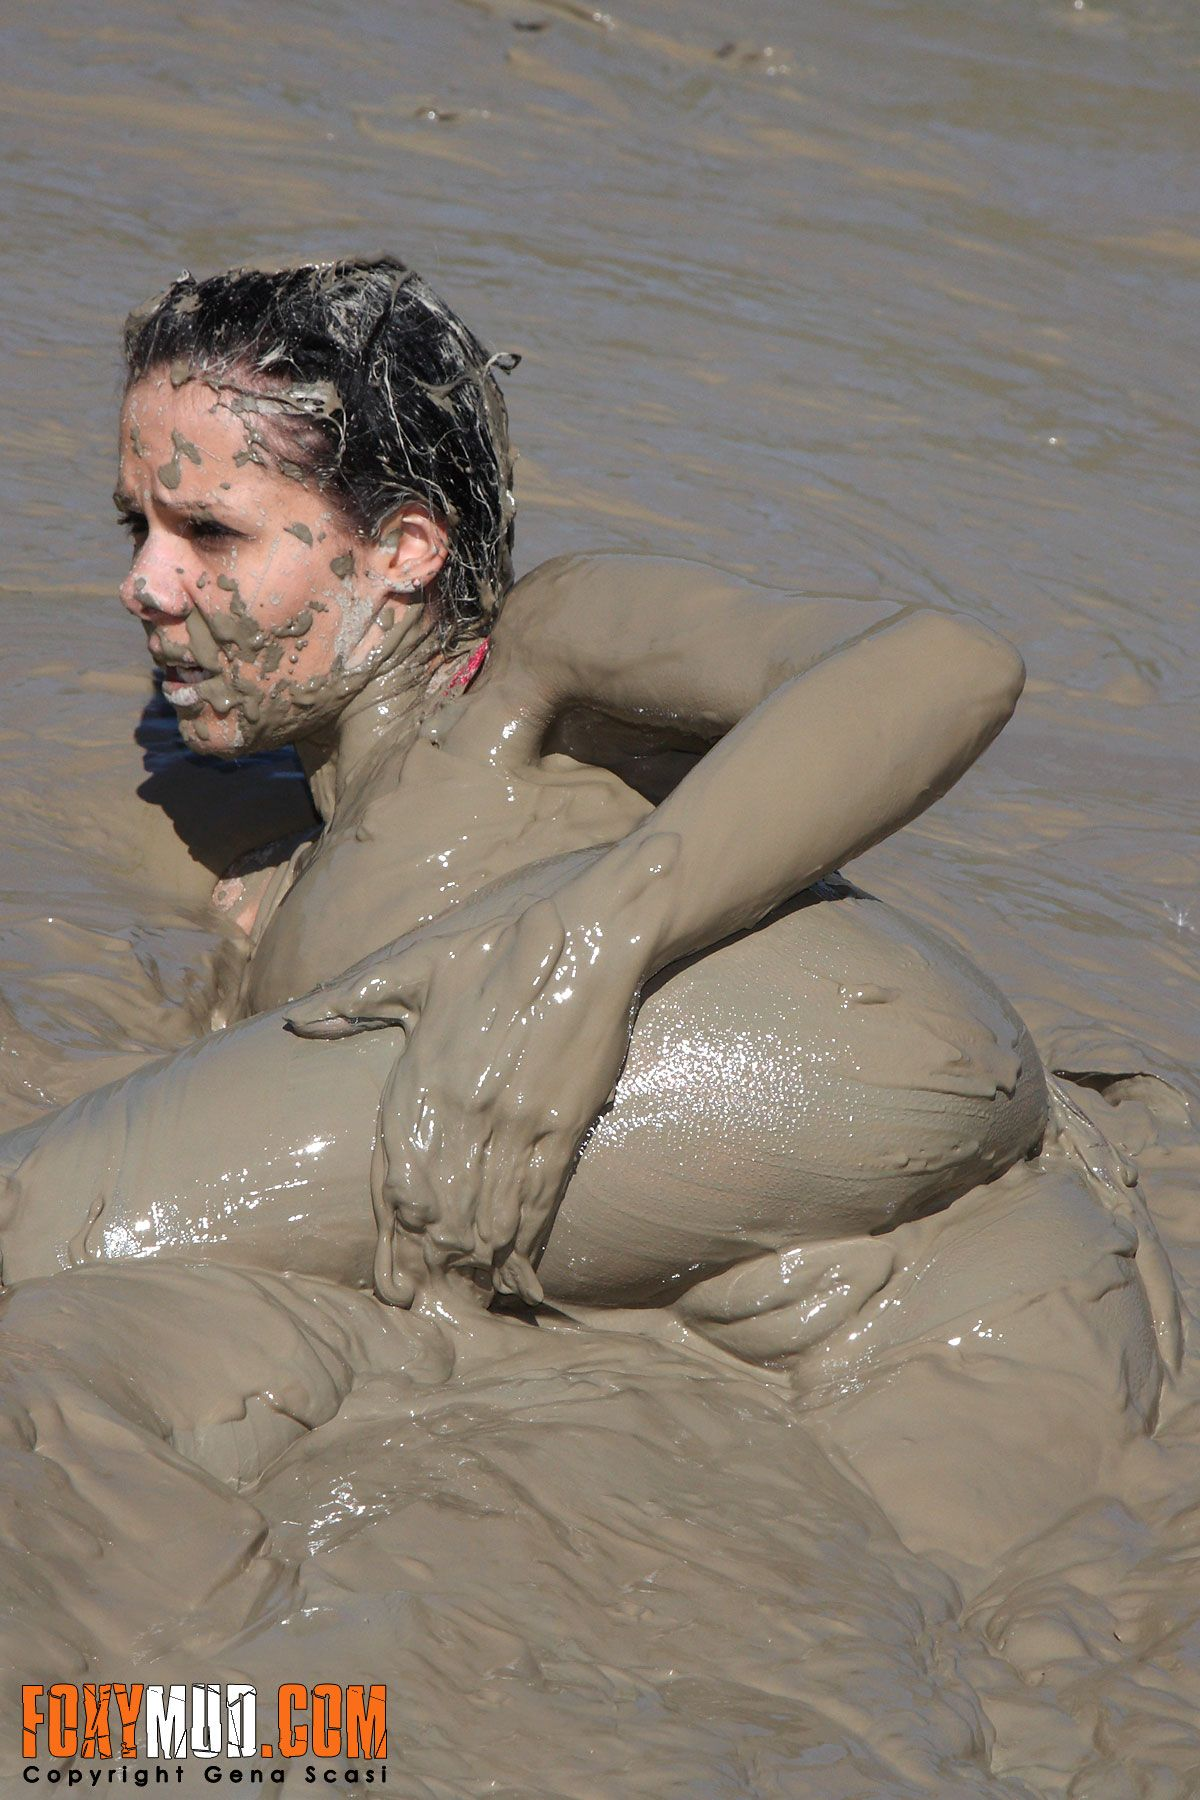 Mud Girl Nude - Cerca Con Google  Looking Hot In Mud  Pinterest  Girls-6437